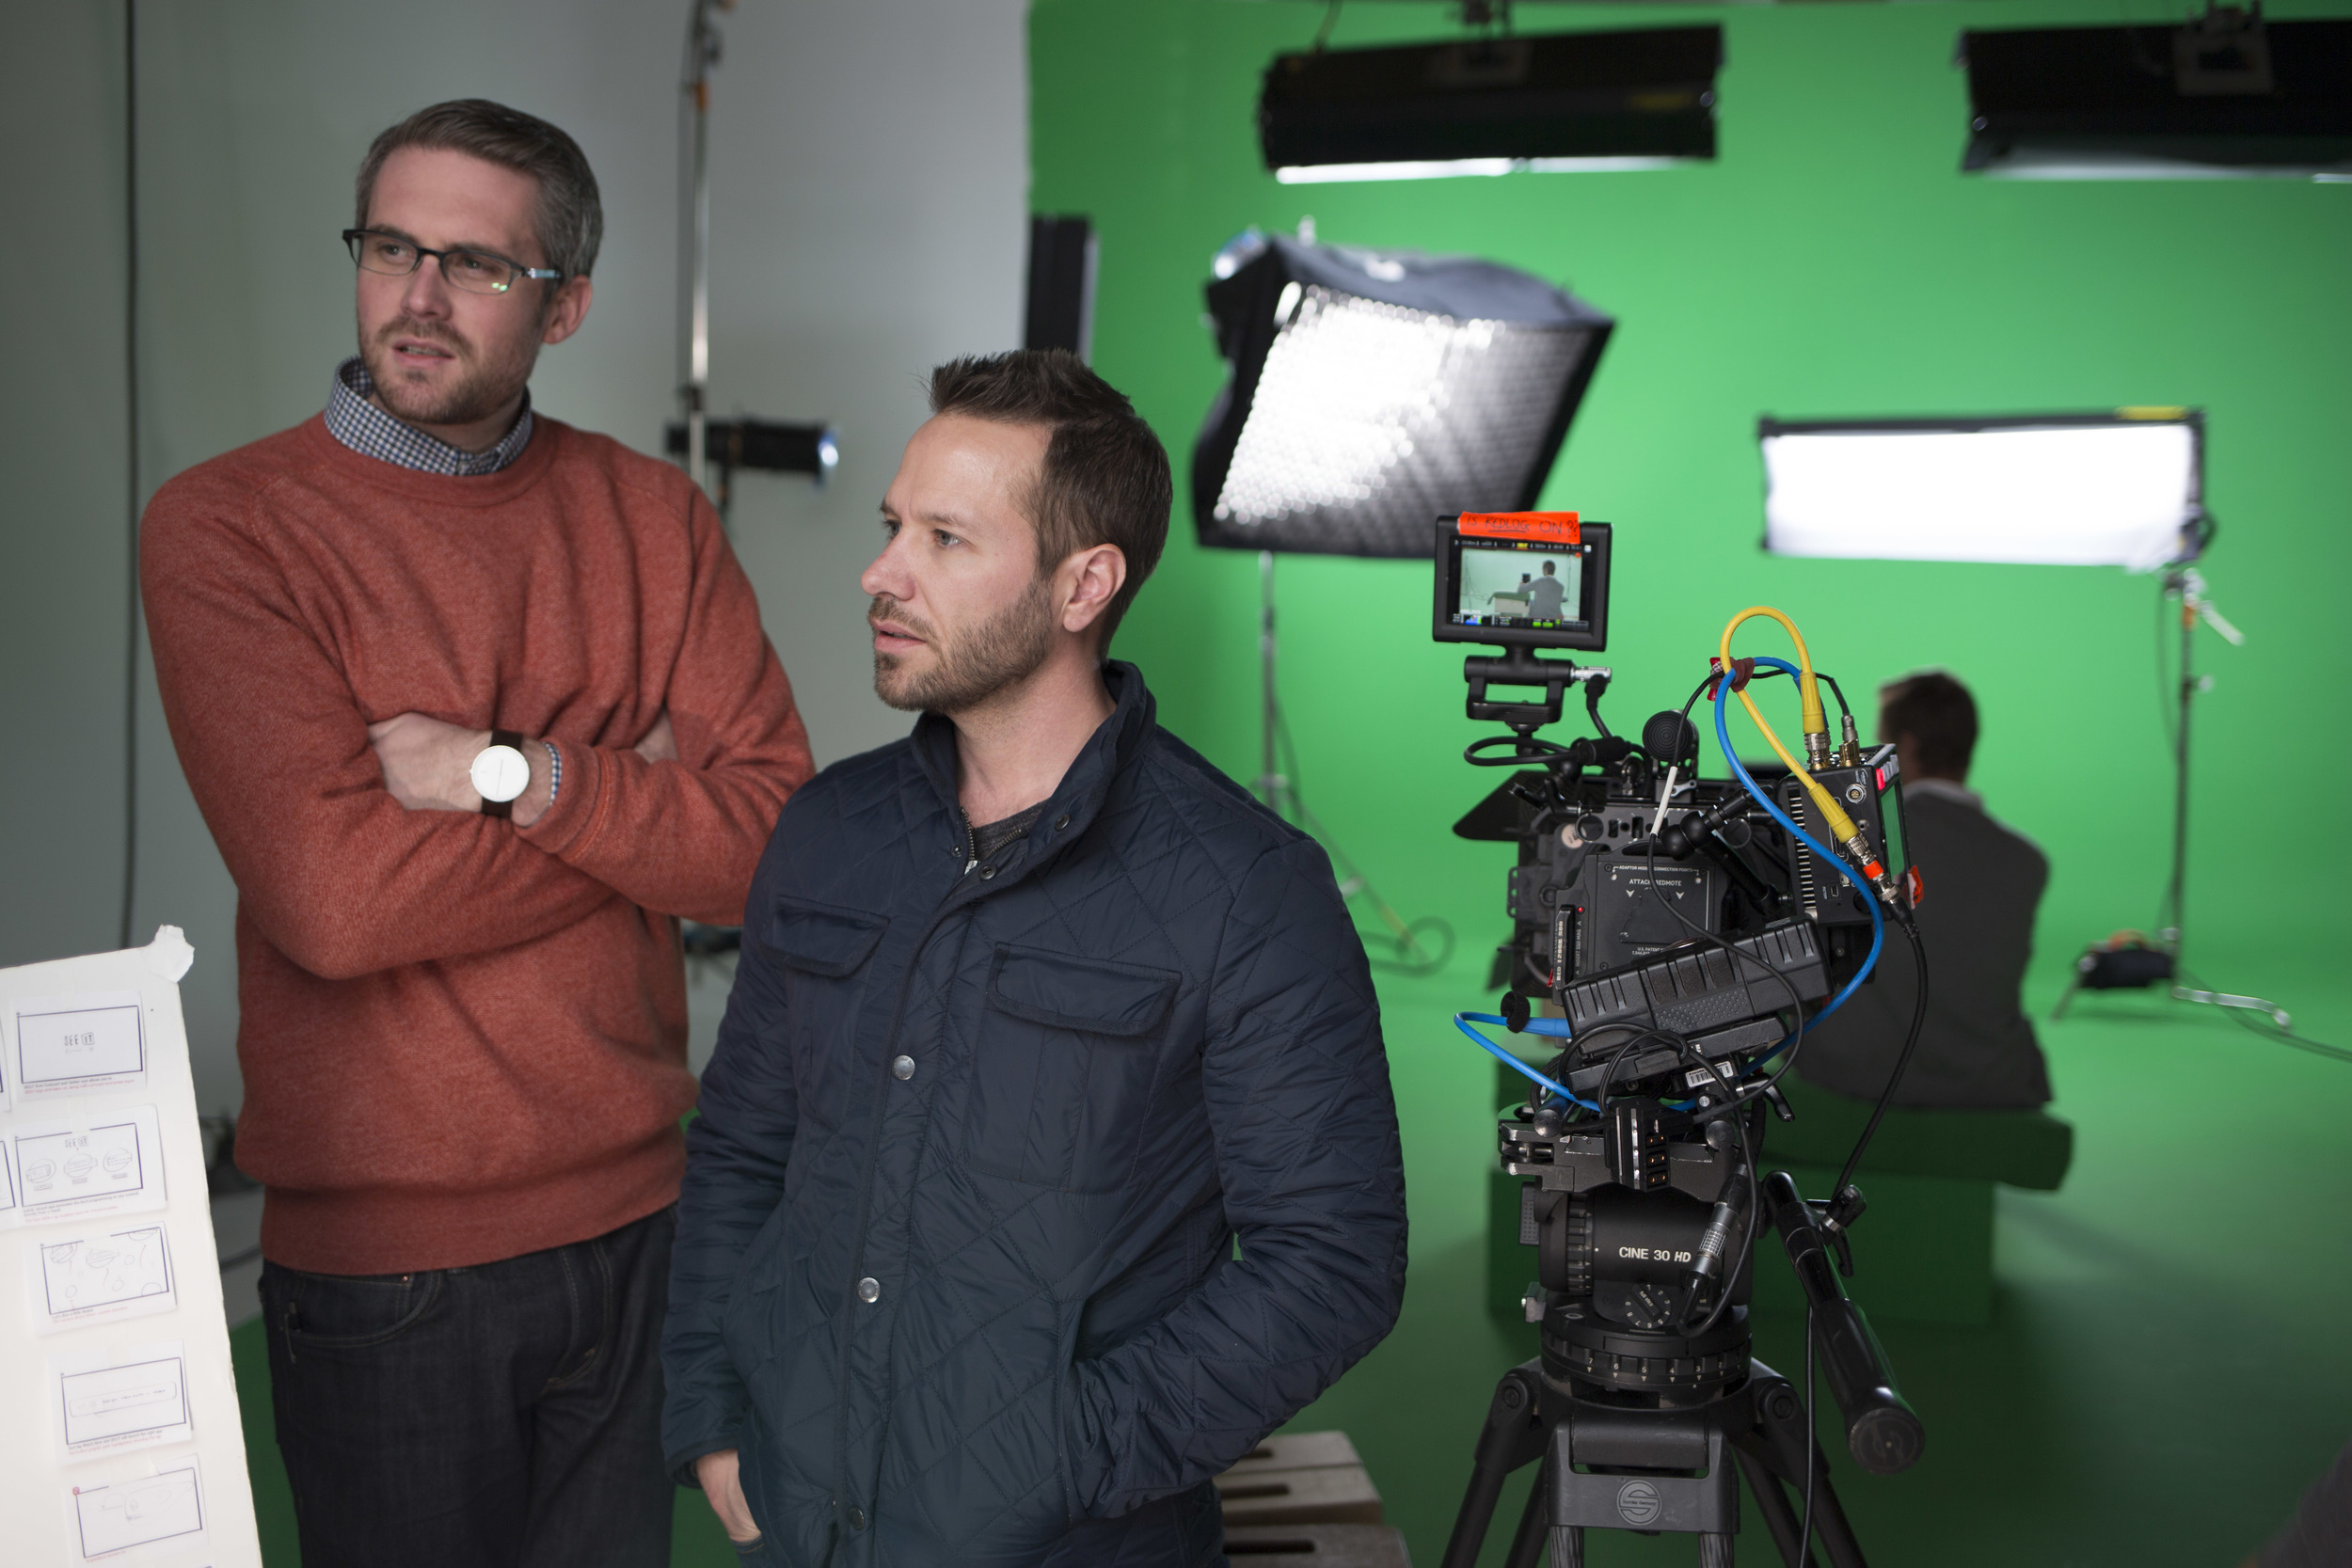 Adam and Phil during a take.